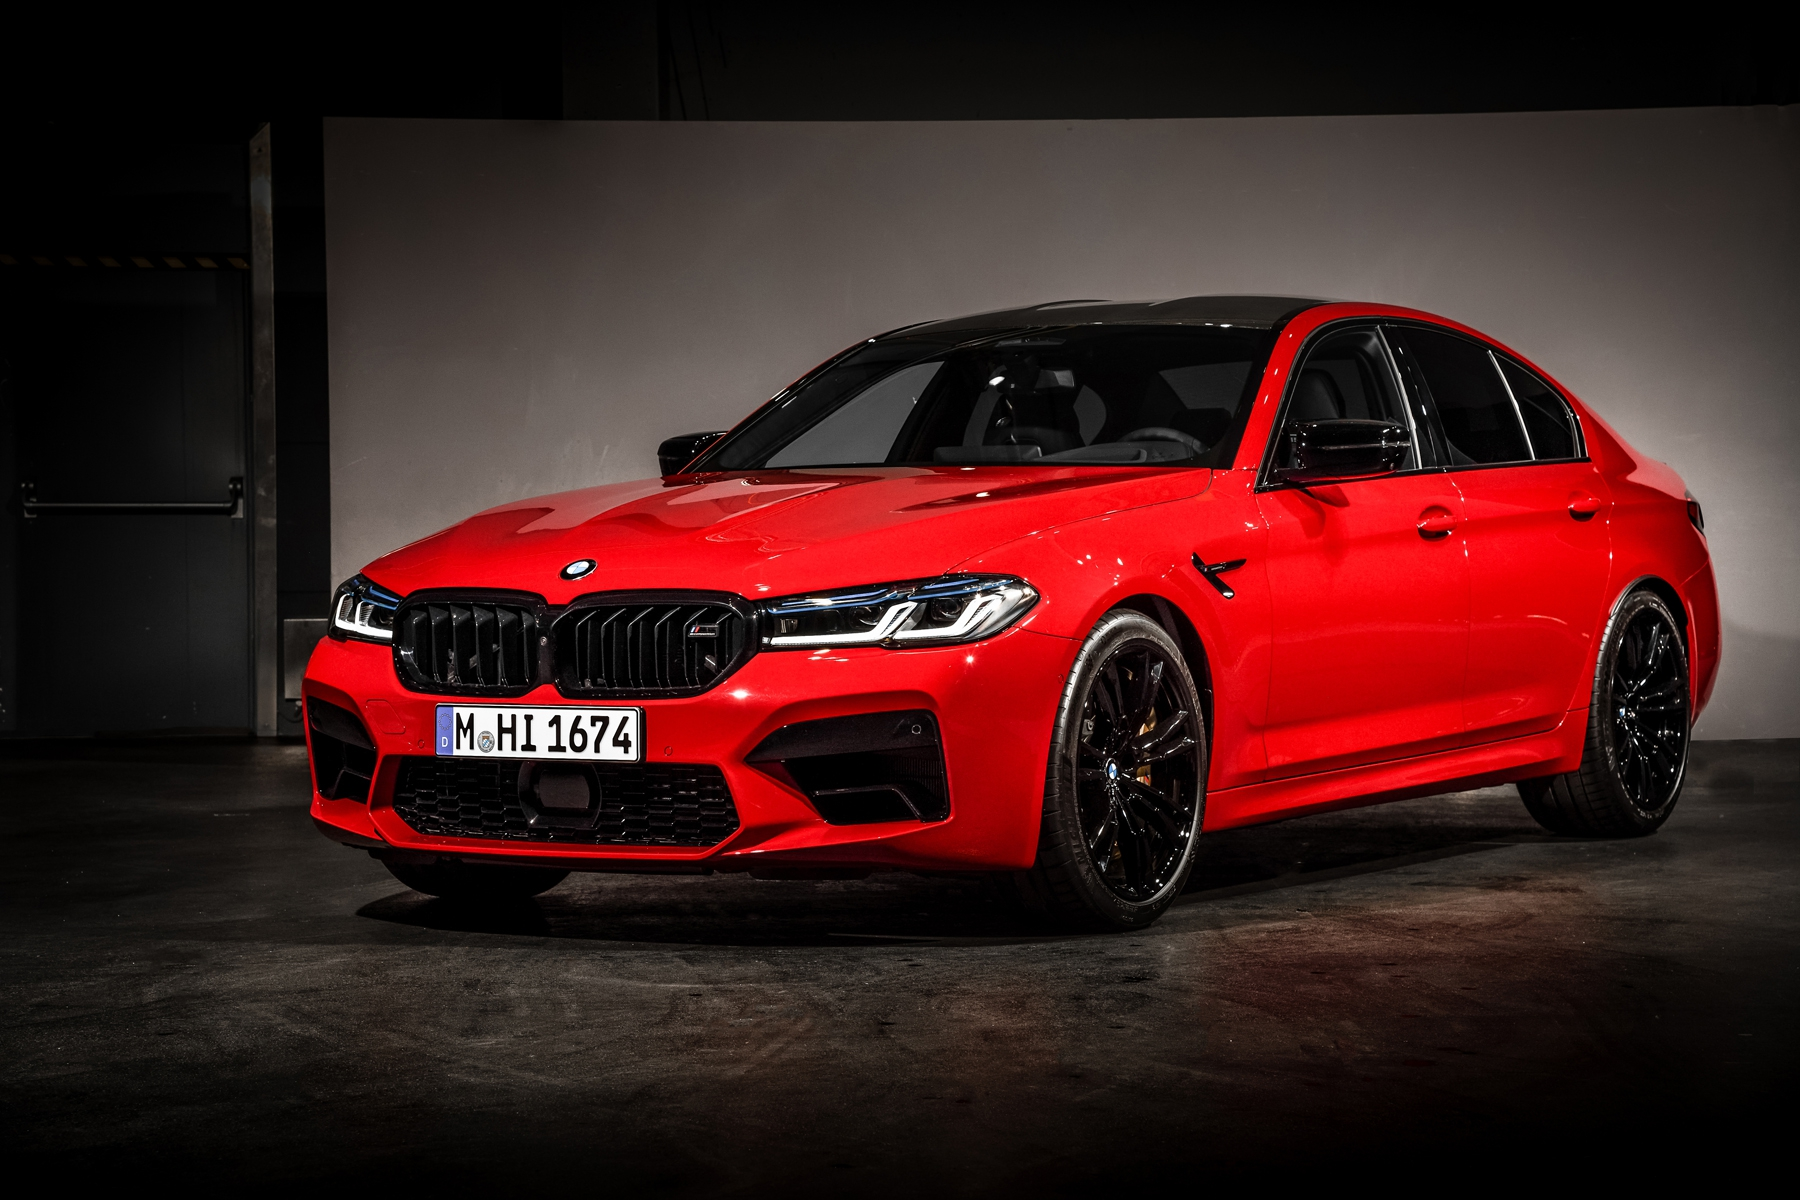 The 2021 BMW M5 Competition